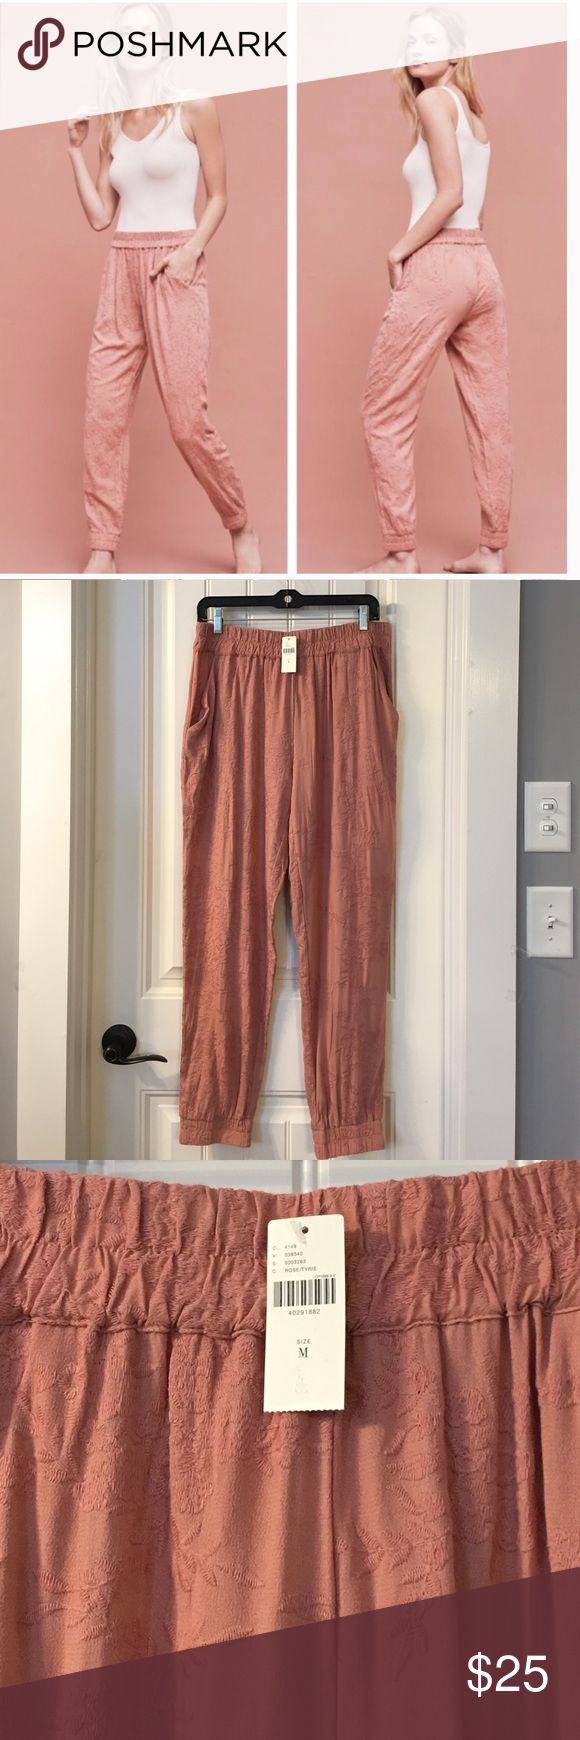 NWT SATURDAY SUNDAY Versa Embroidered Jogger Pants Gorgeous pair of pants that are fully embroidered from waist to hem in a floral design. NWT. Anthropologie Pants